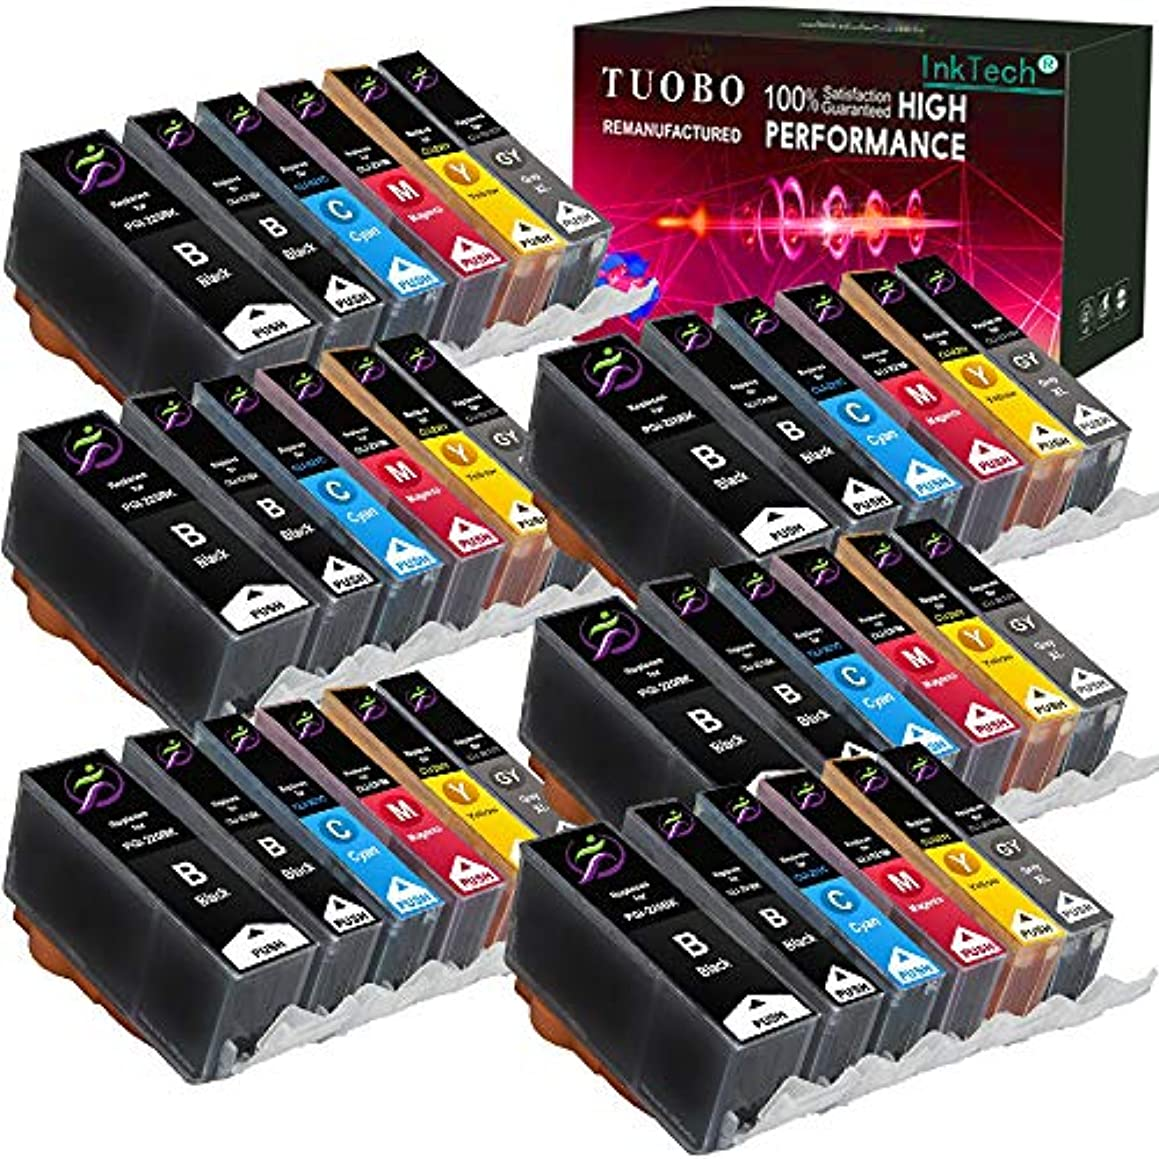 Tuobo 36 Pack PGI-220 CLI-221 and Gray with New Chip Ink Cartridges Replacement Compatible with PIXMA IP3600 IP4600 IP4700 MX860 MX870 MP560 MP620 MP620B MP640 MP980 MP990 PMFP1 PMFP3 SFP1 Printer